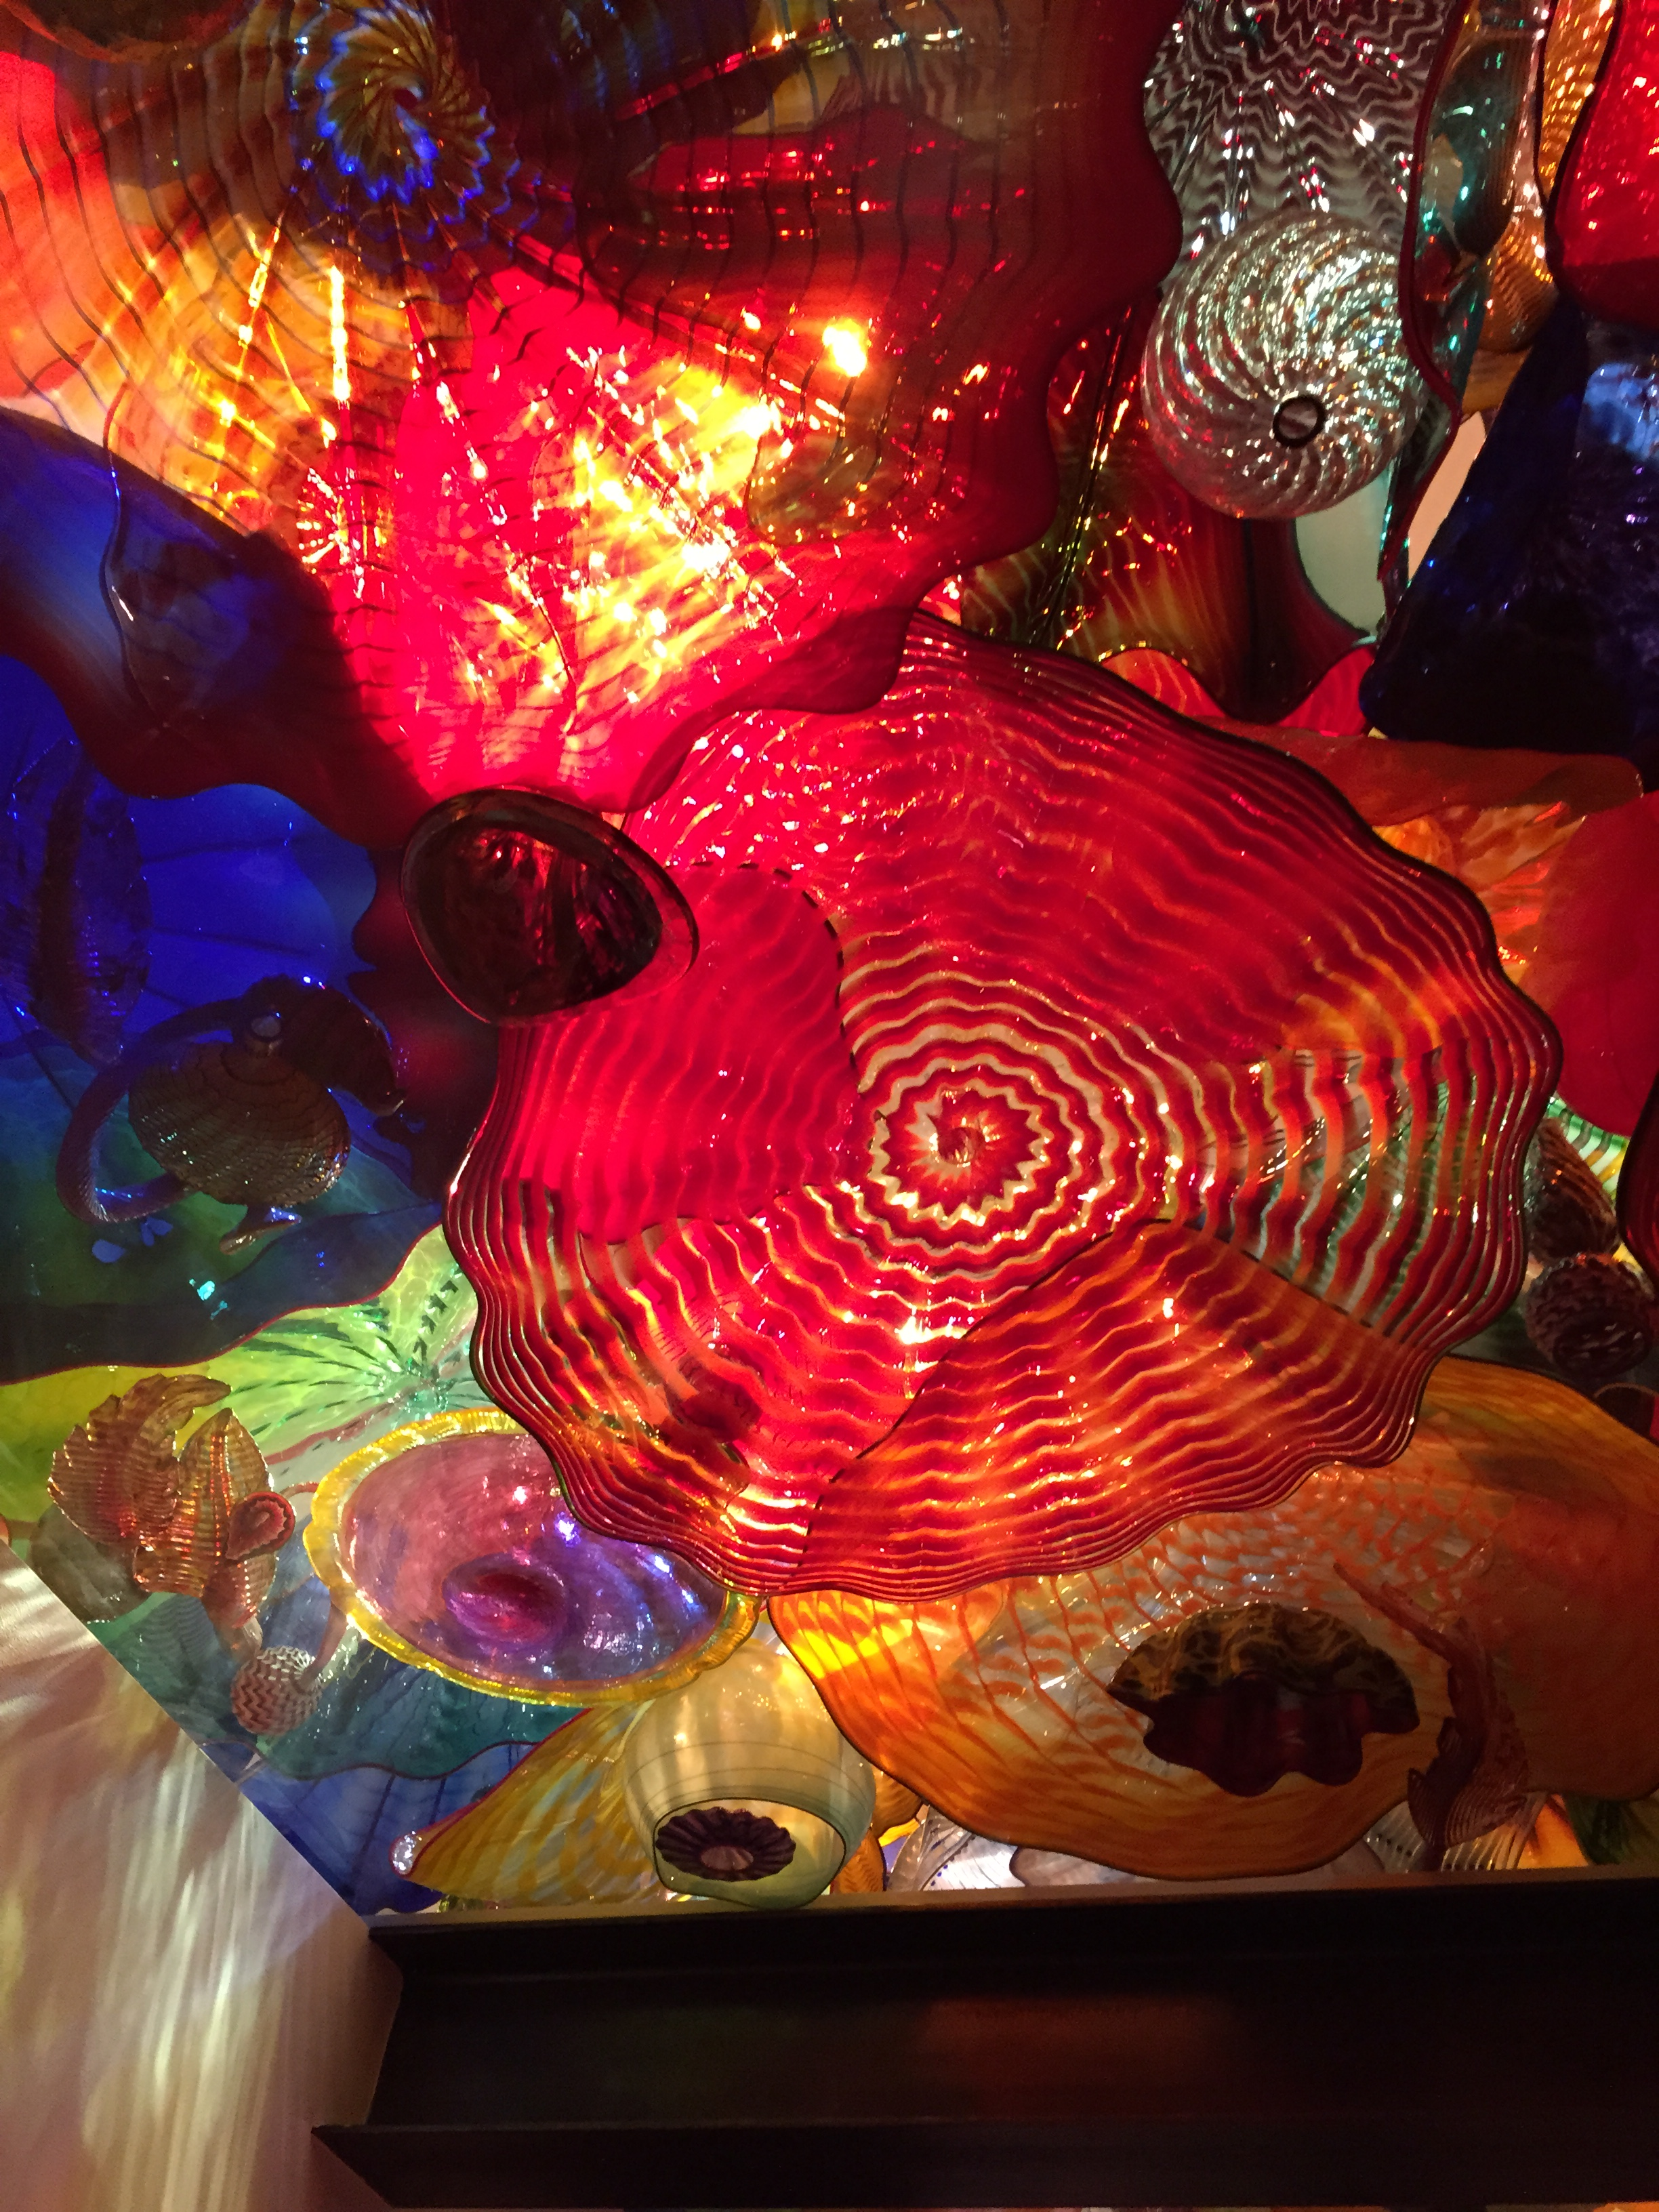 Ceiling of glass sculptures